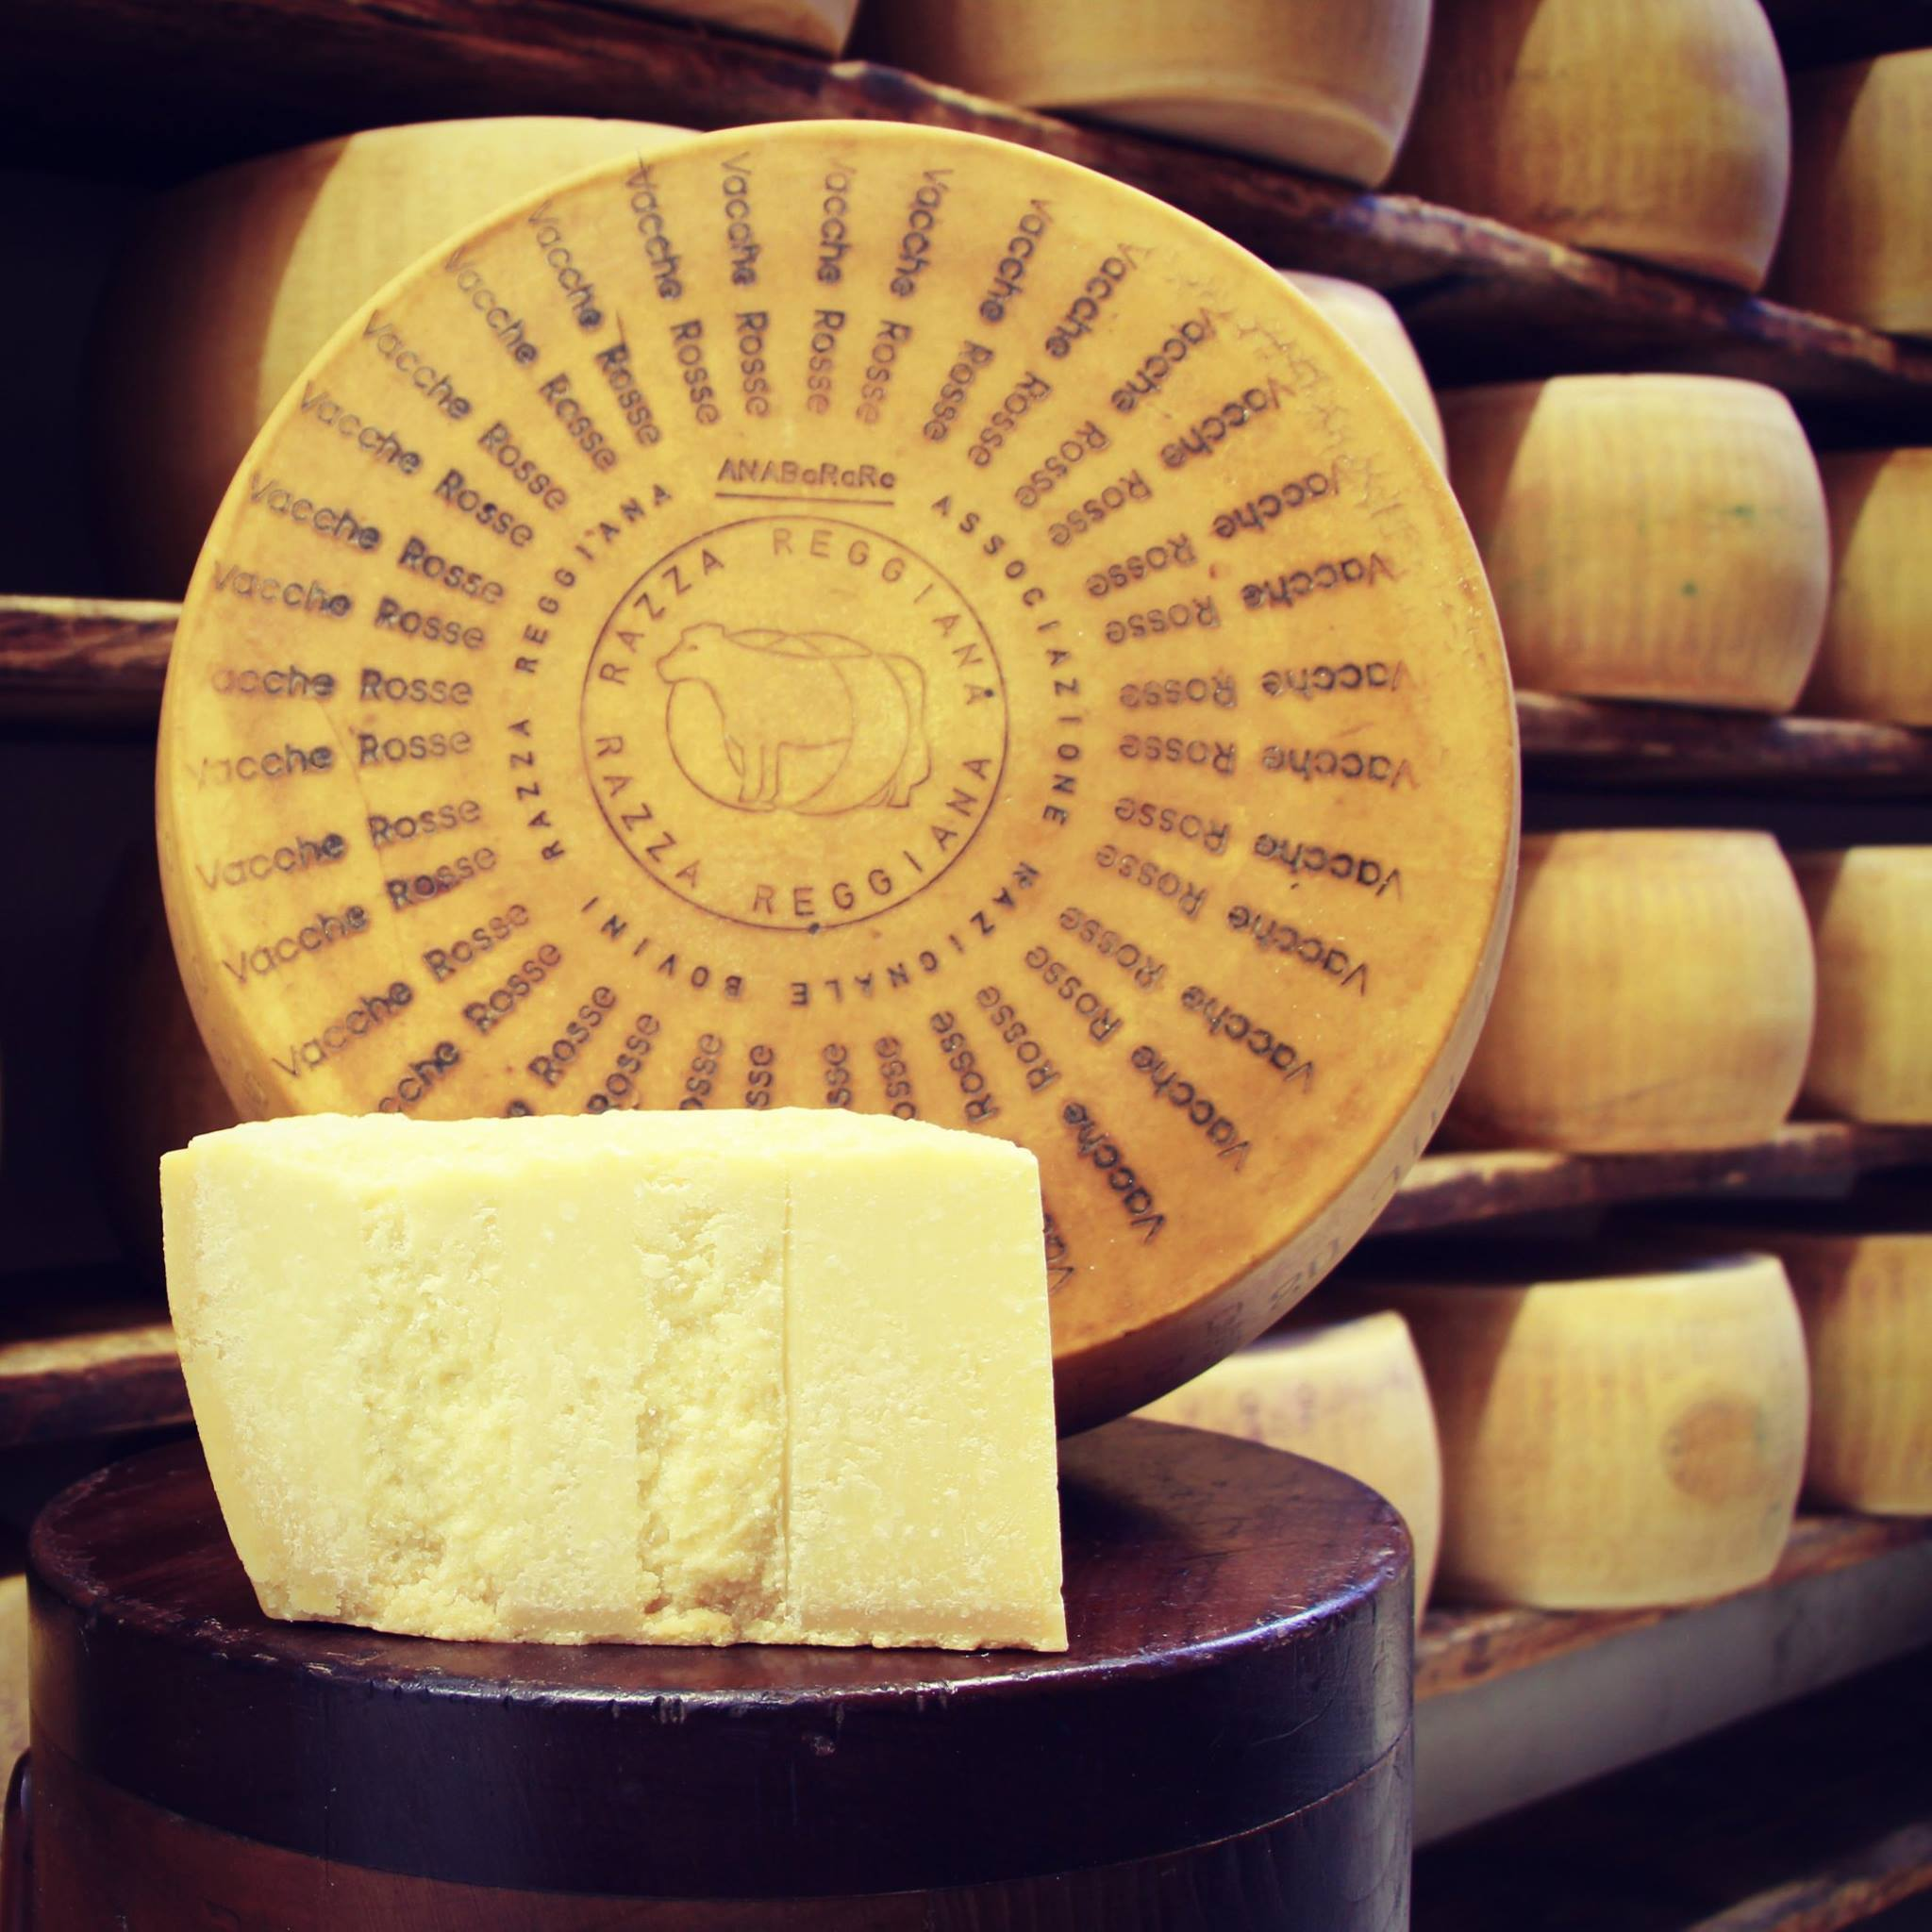 Parmigiano Reggiano Vacche Rosse (milk from the red cow) 30 months